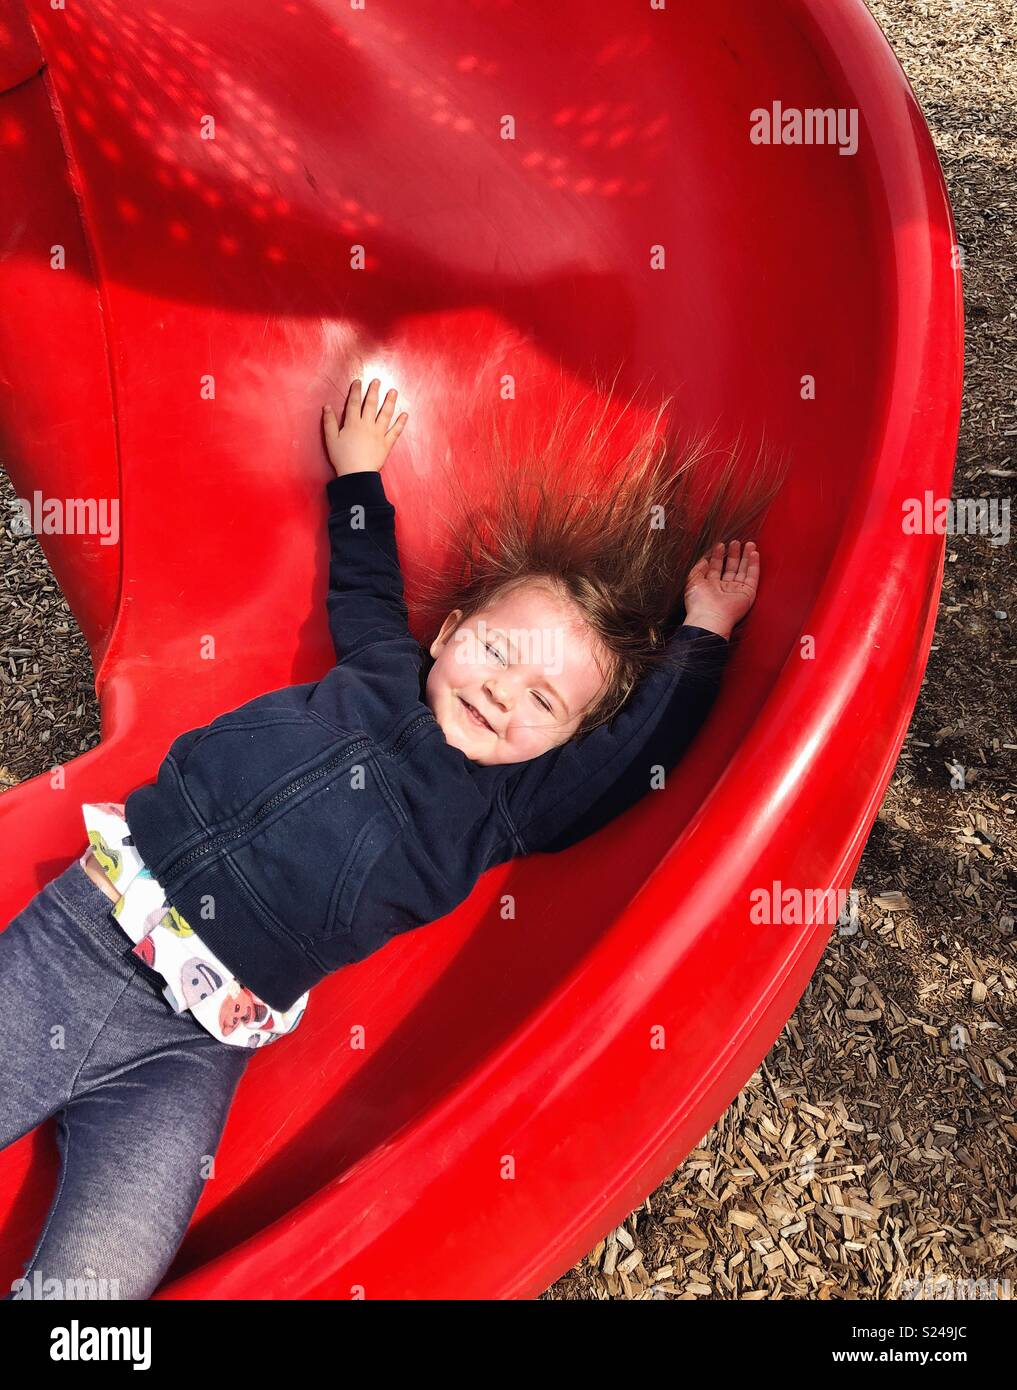 Action image of toddler girl sliding down red slide with arms up and hair sticking up - Stock Image